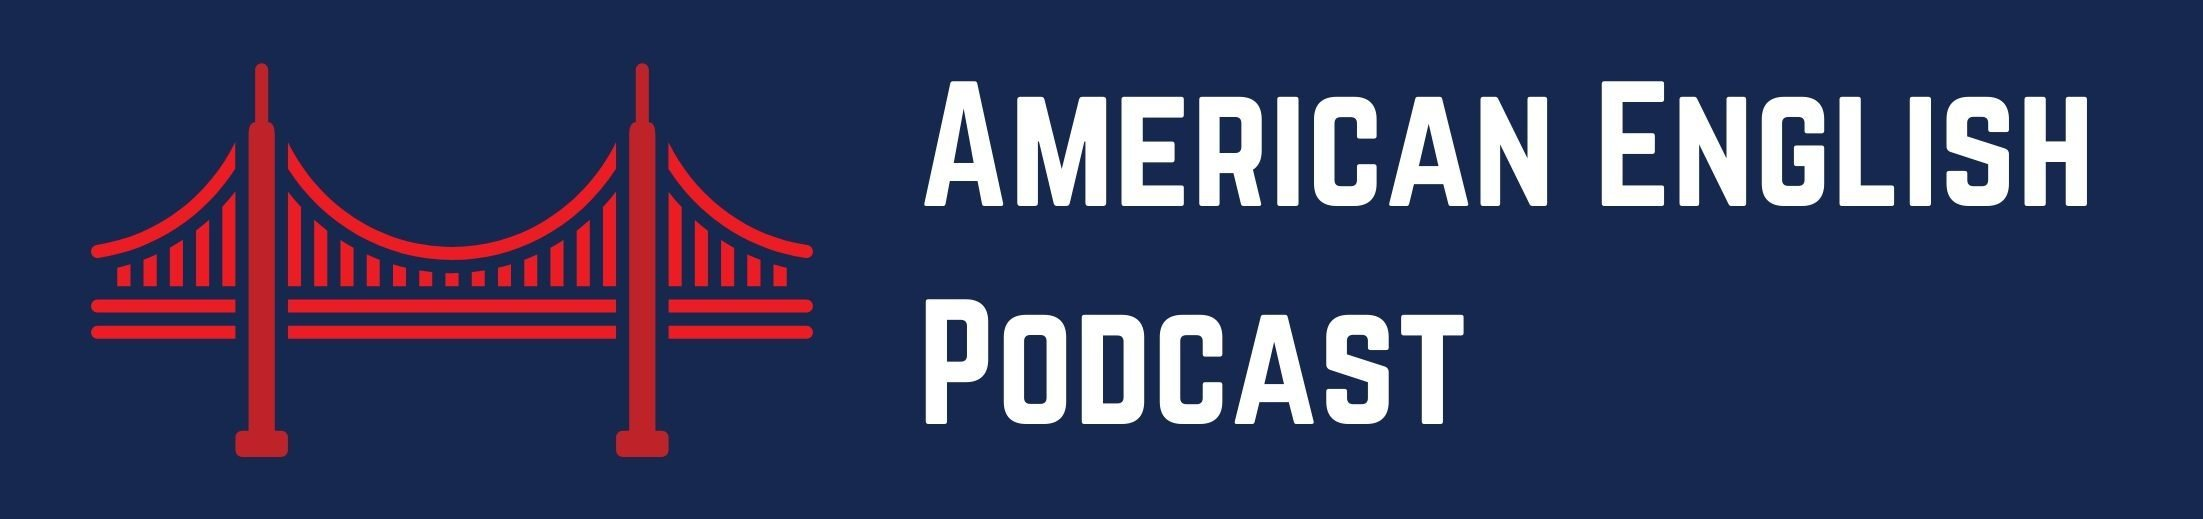 American English Podcast